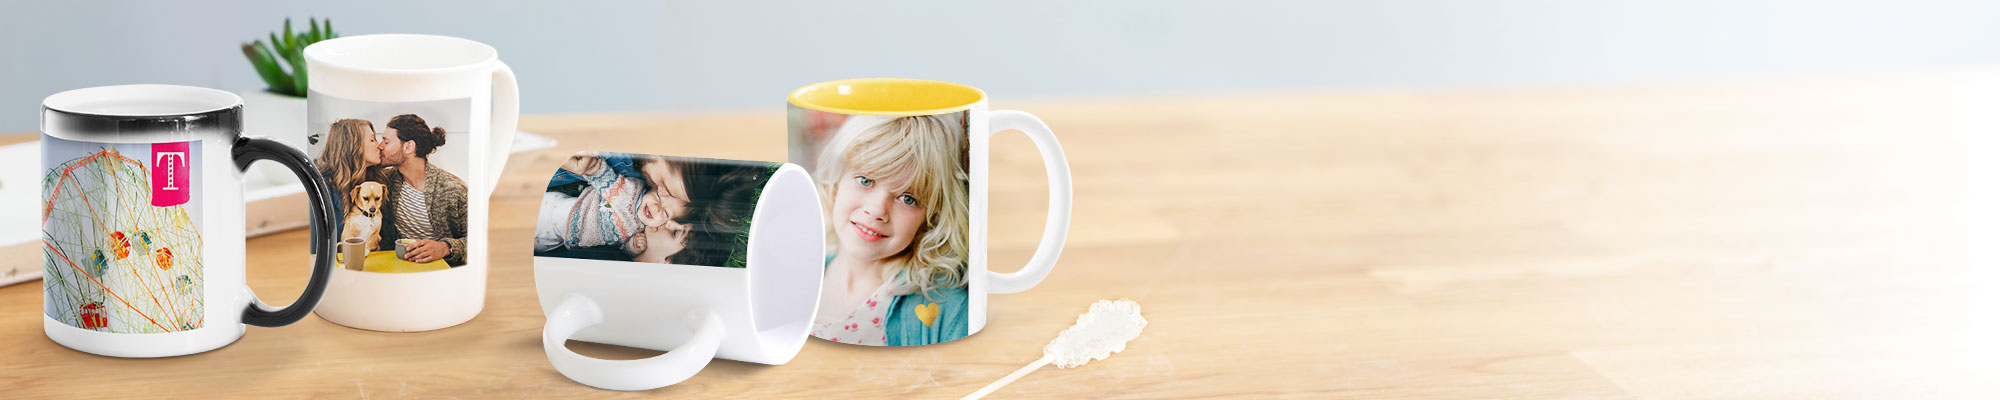 Photo Mugs : Perfect for a morning cuppa, our range of personalised mugs make a cute Mother's Day gift.